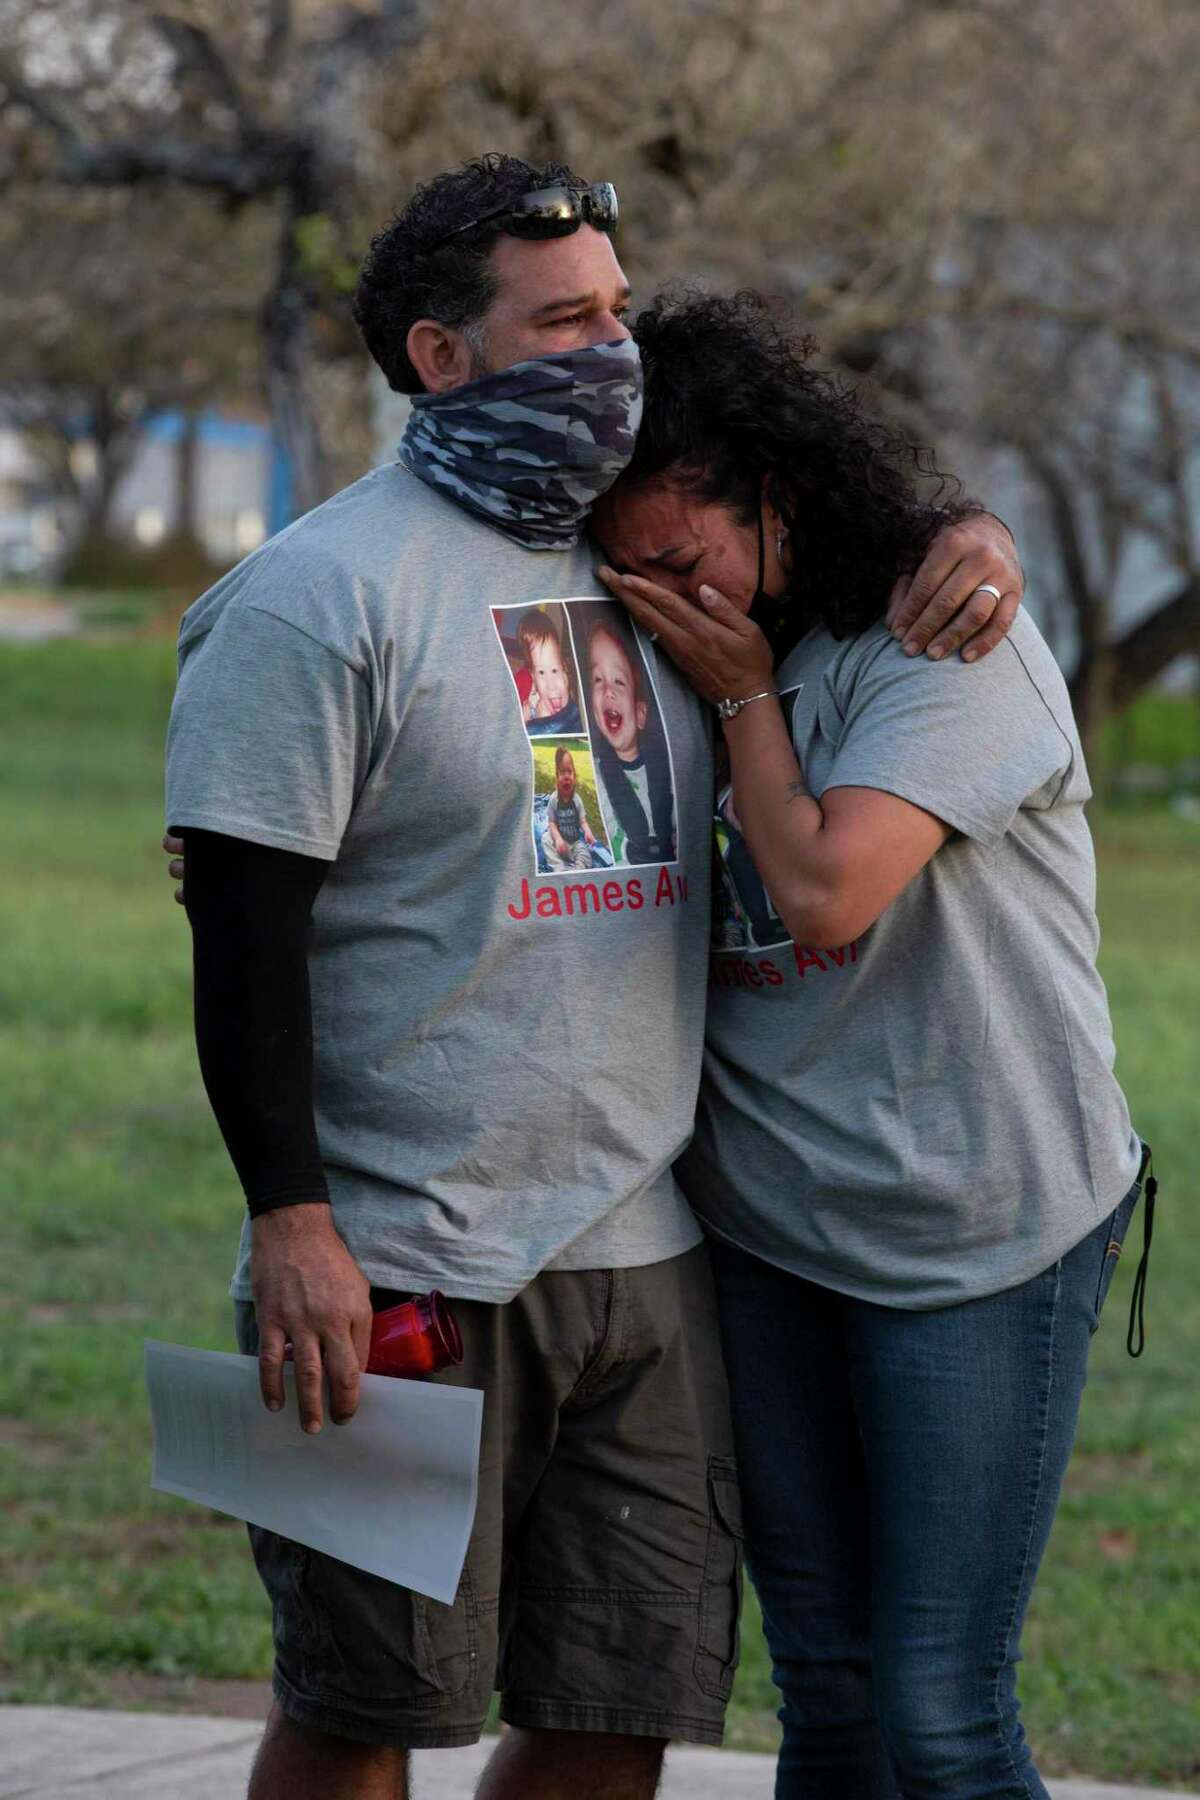 Jerry Gomez holds his wife Mariesol at a vigil for their great nephew, 19-month-old James Avi Chairez who has not been seen since January. His mother, D'Lanny Chairez, has been arrested but has not said anything about James' whereabouts.